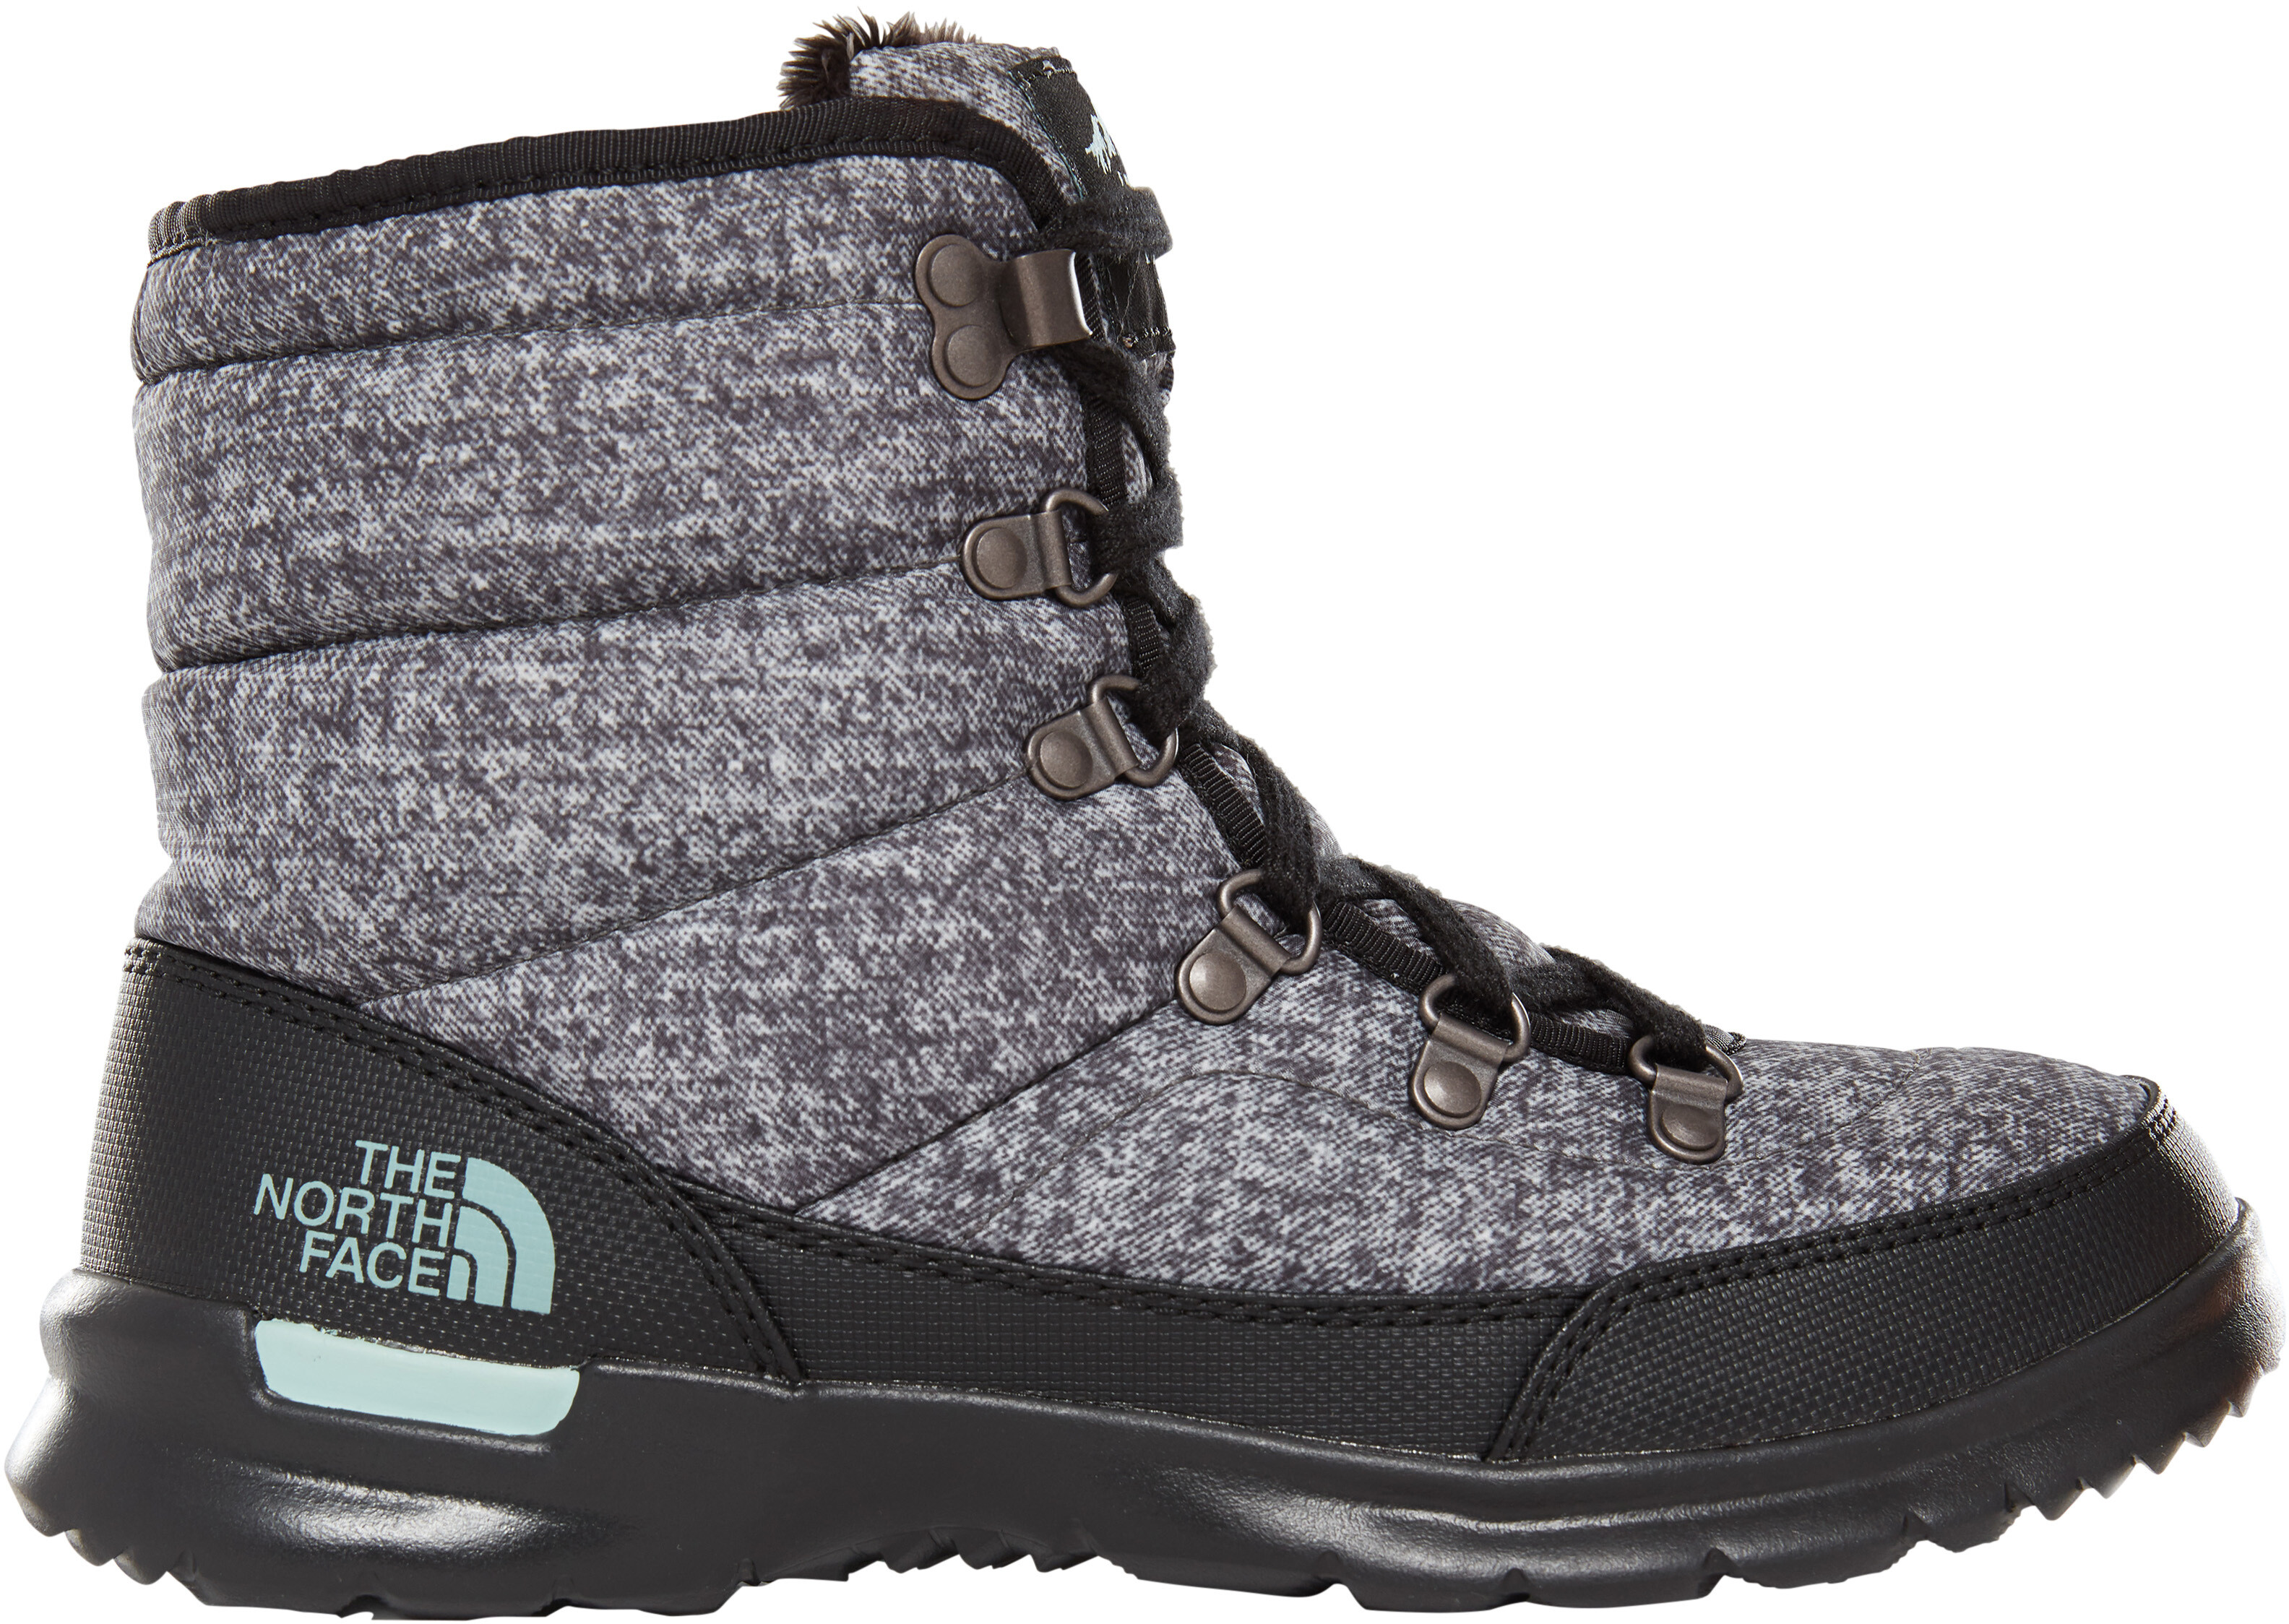 0d14c2cc The North Face Thermoball Lace II Shoes Women burnished houndstooth  print/blue haze